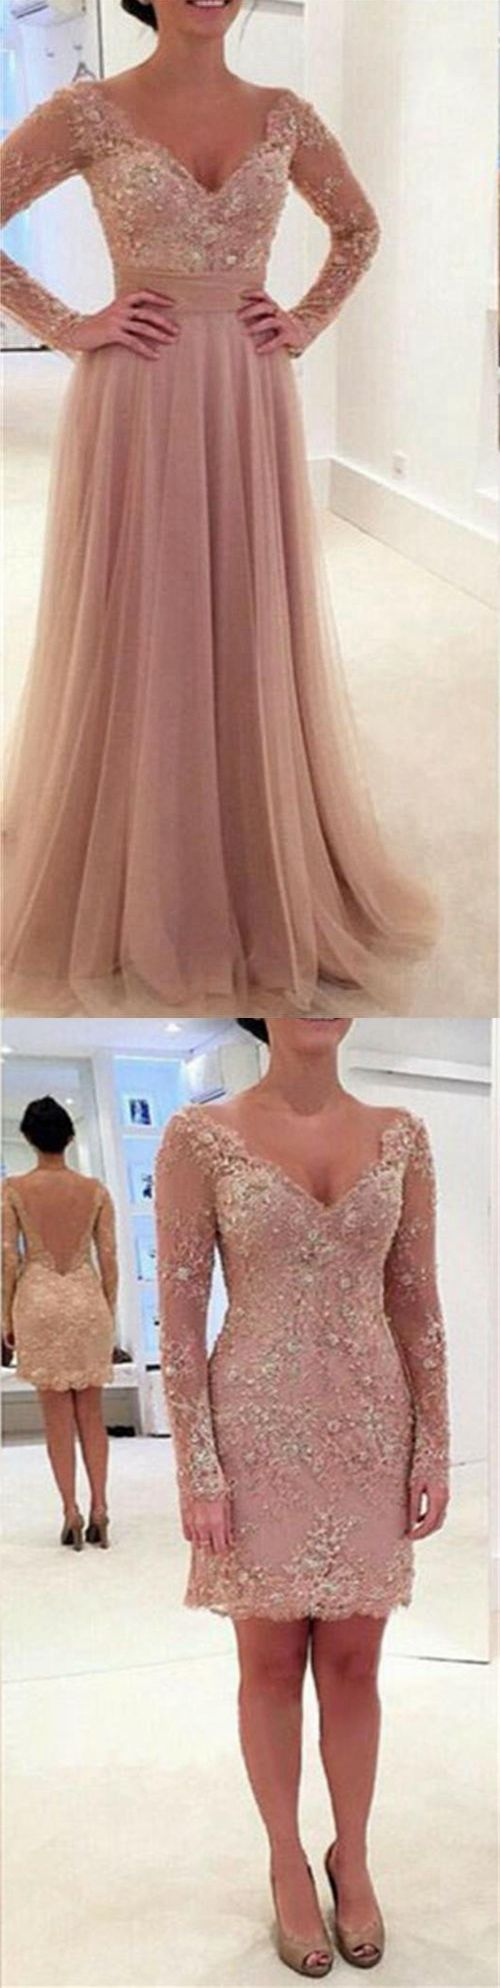 2017 Two Pieces Prom Dress with Removable Skirt Evening Party Formal Wear pst1545